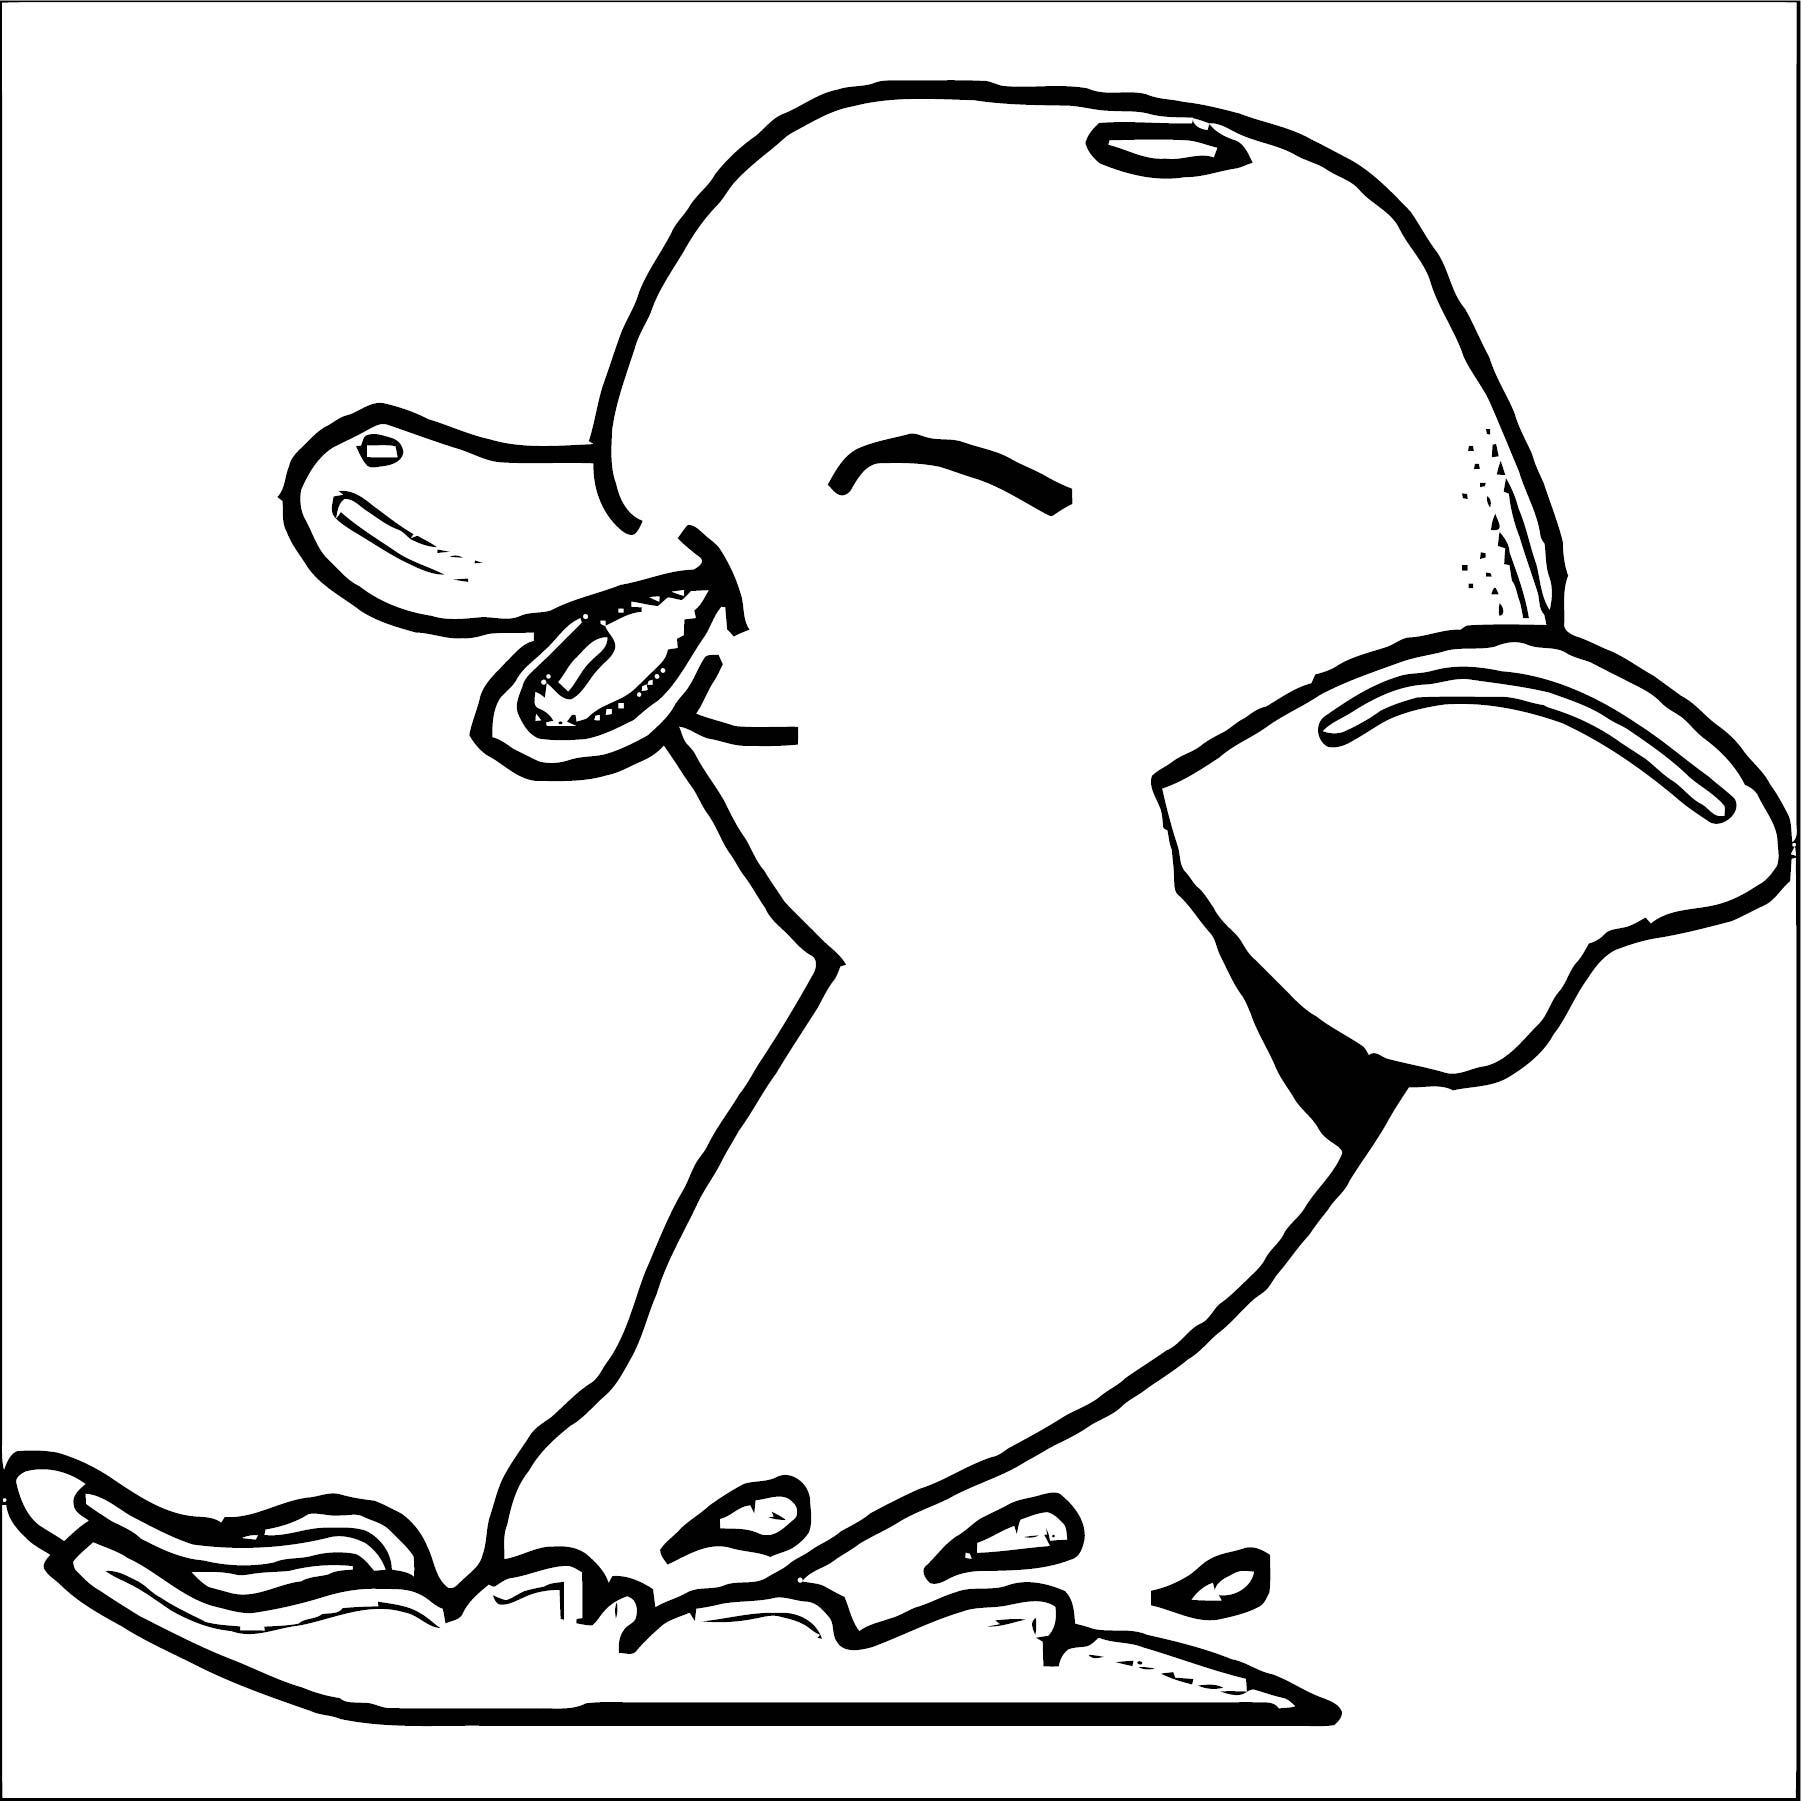 Dolphin Coloring Page 053